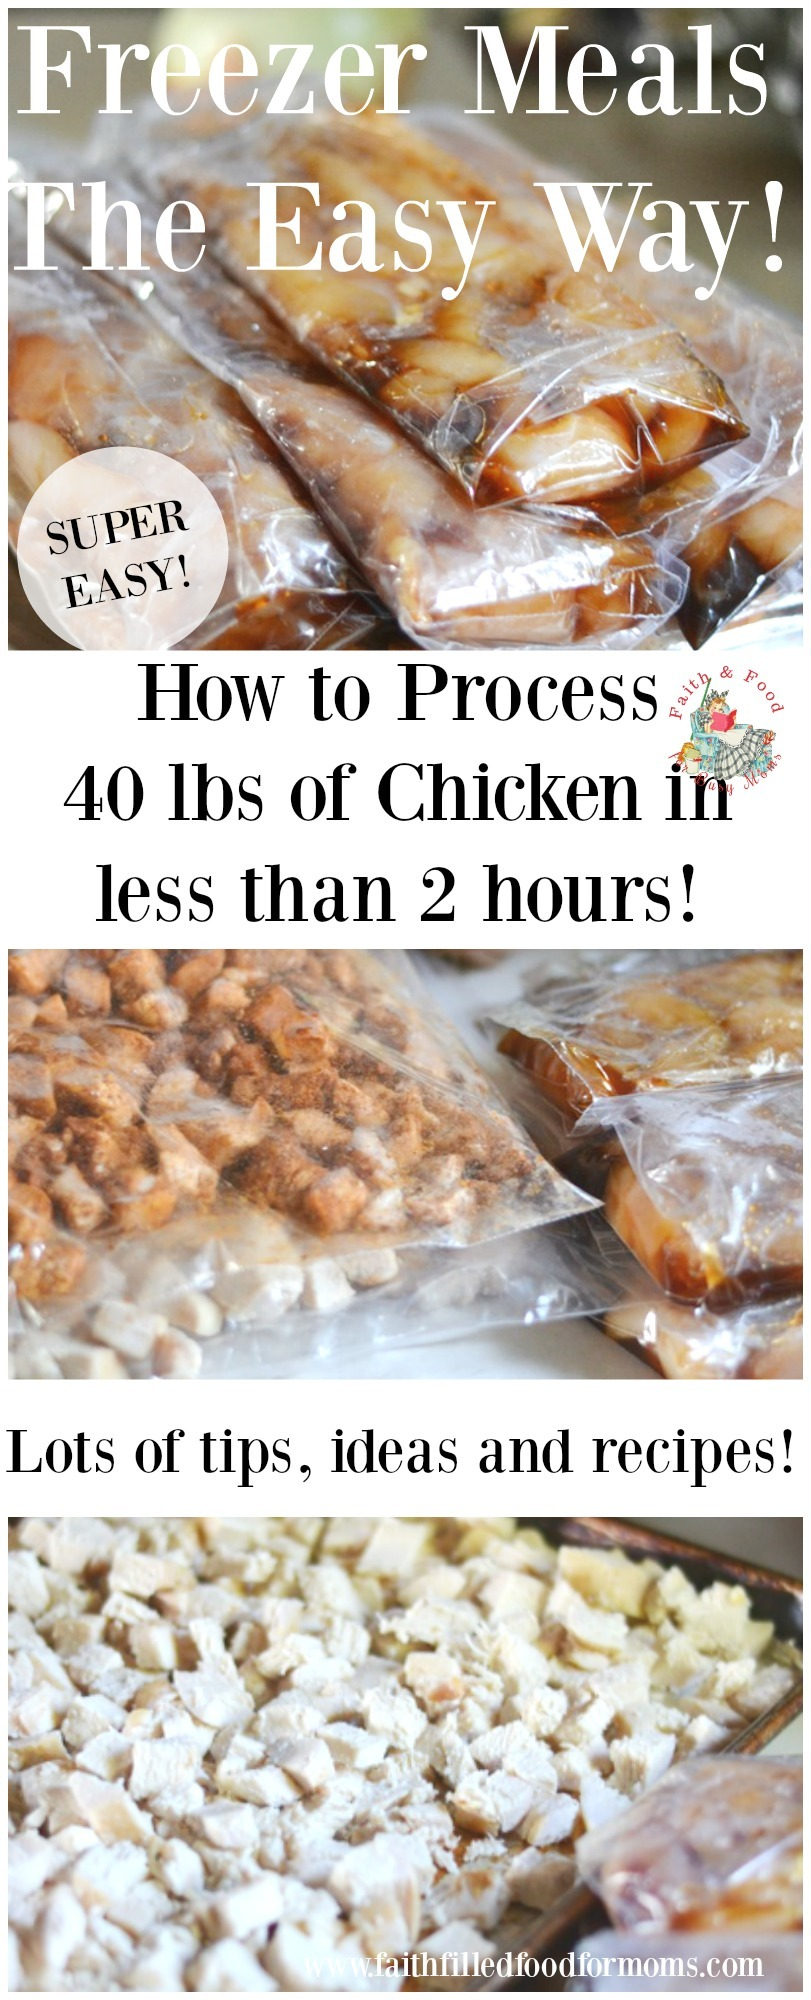 How to process 40 lbs of chicken